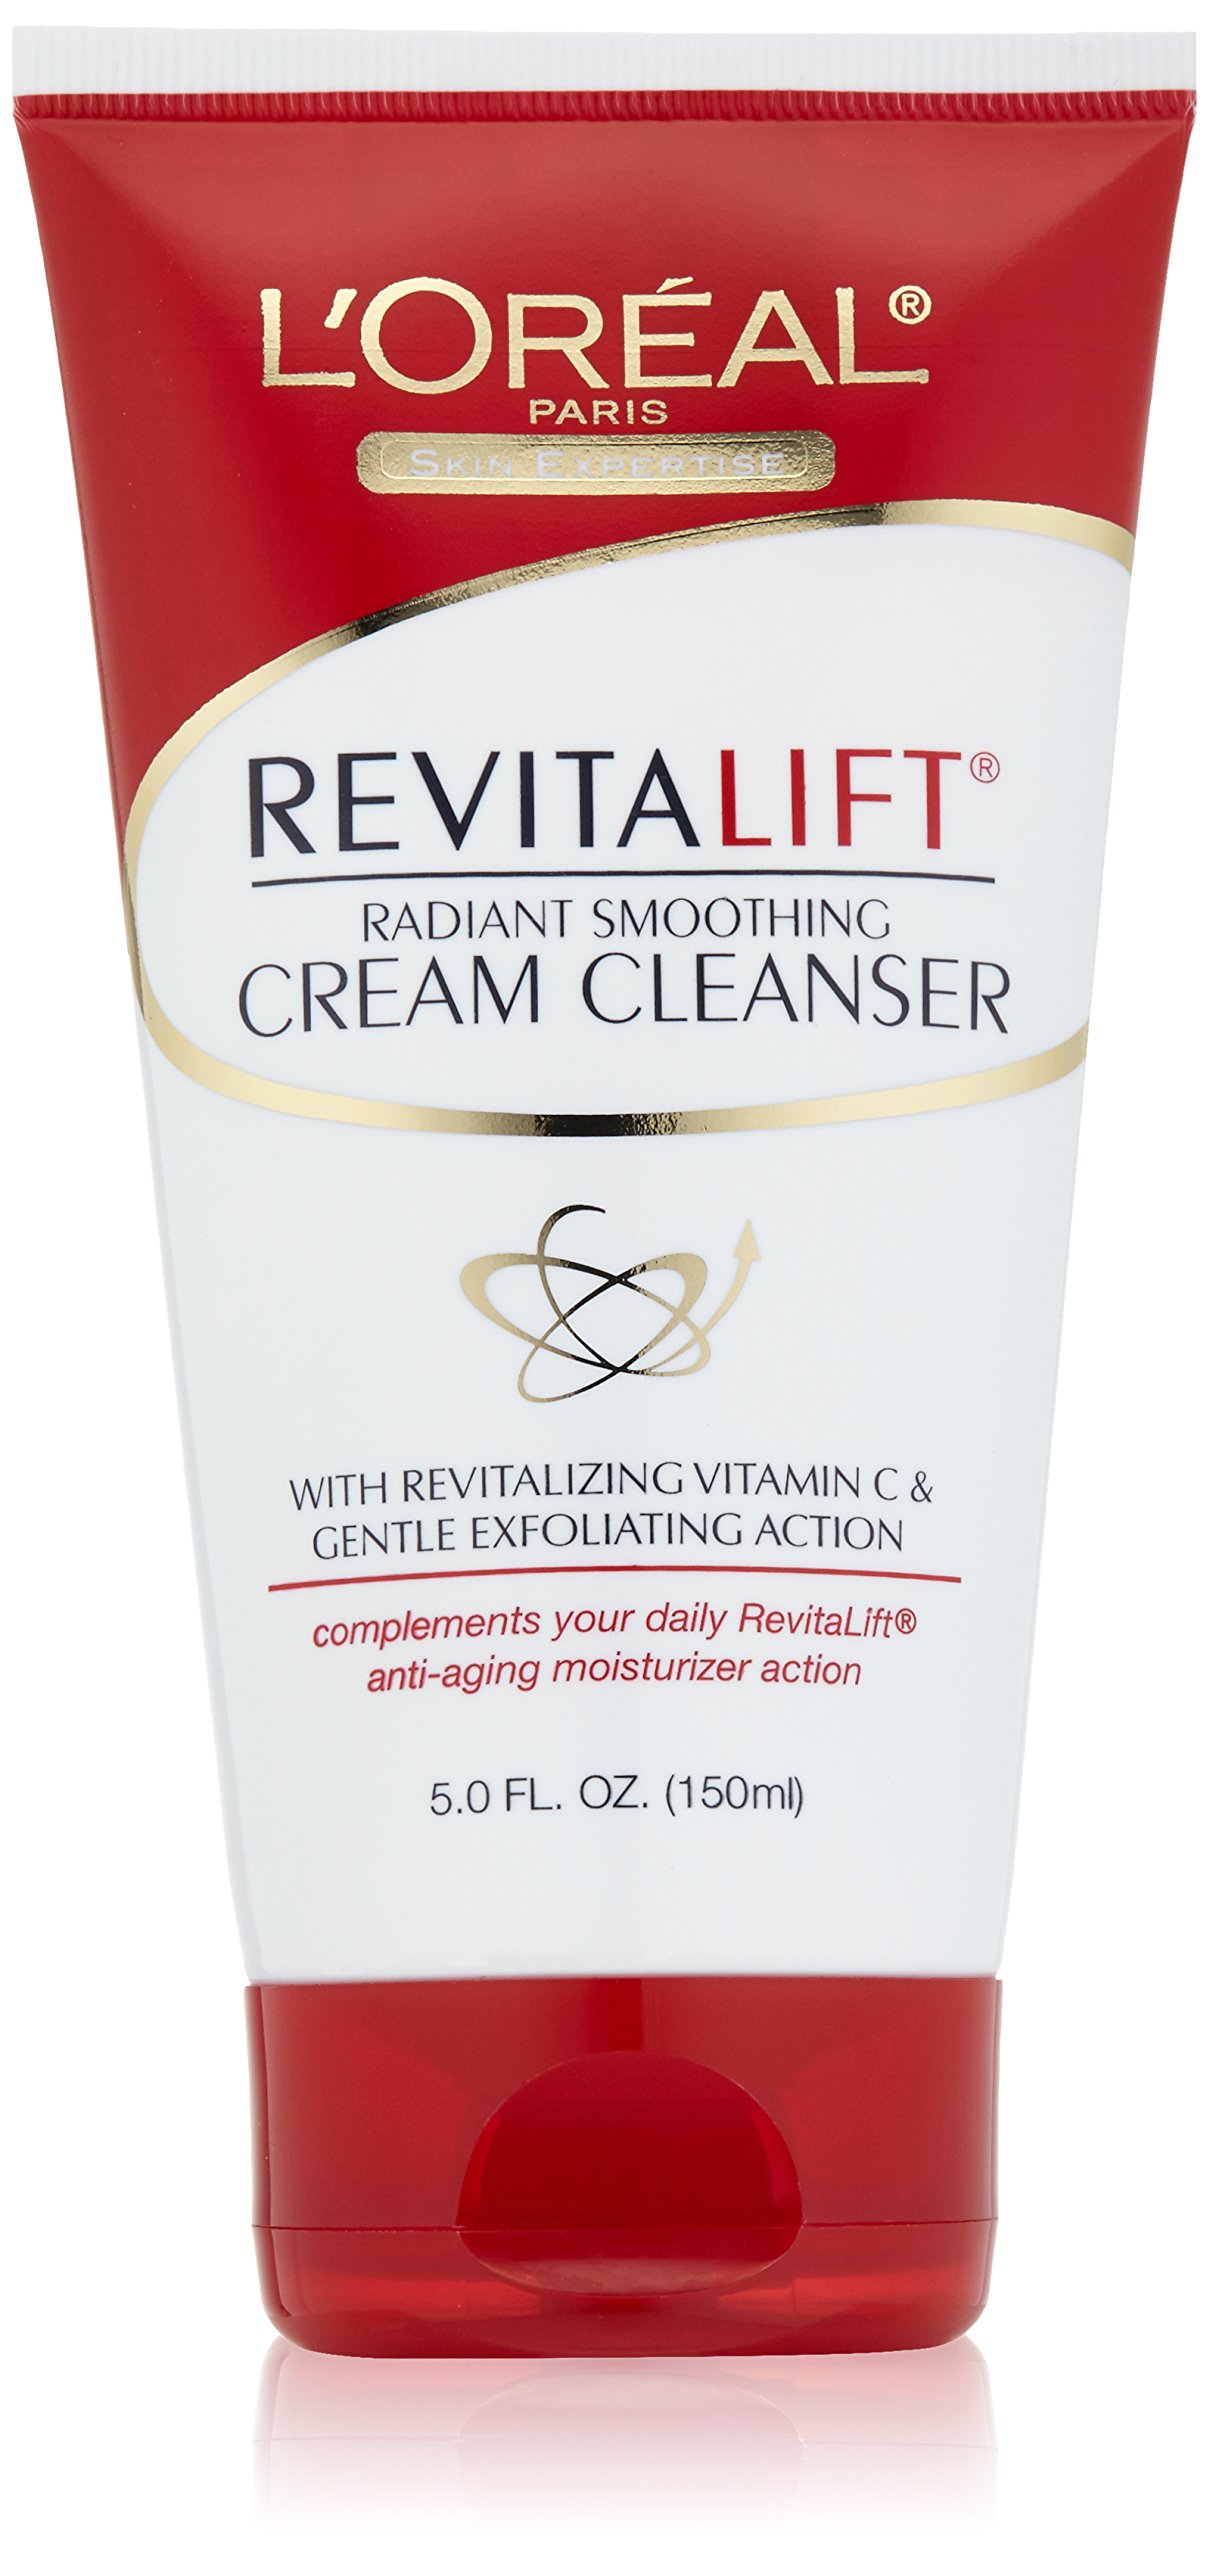 L'Oréal Paris Revitalift Radiant Smoothing Cream Cleanser, 5 fl. oz.